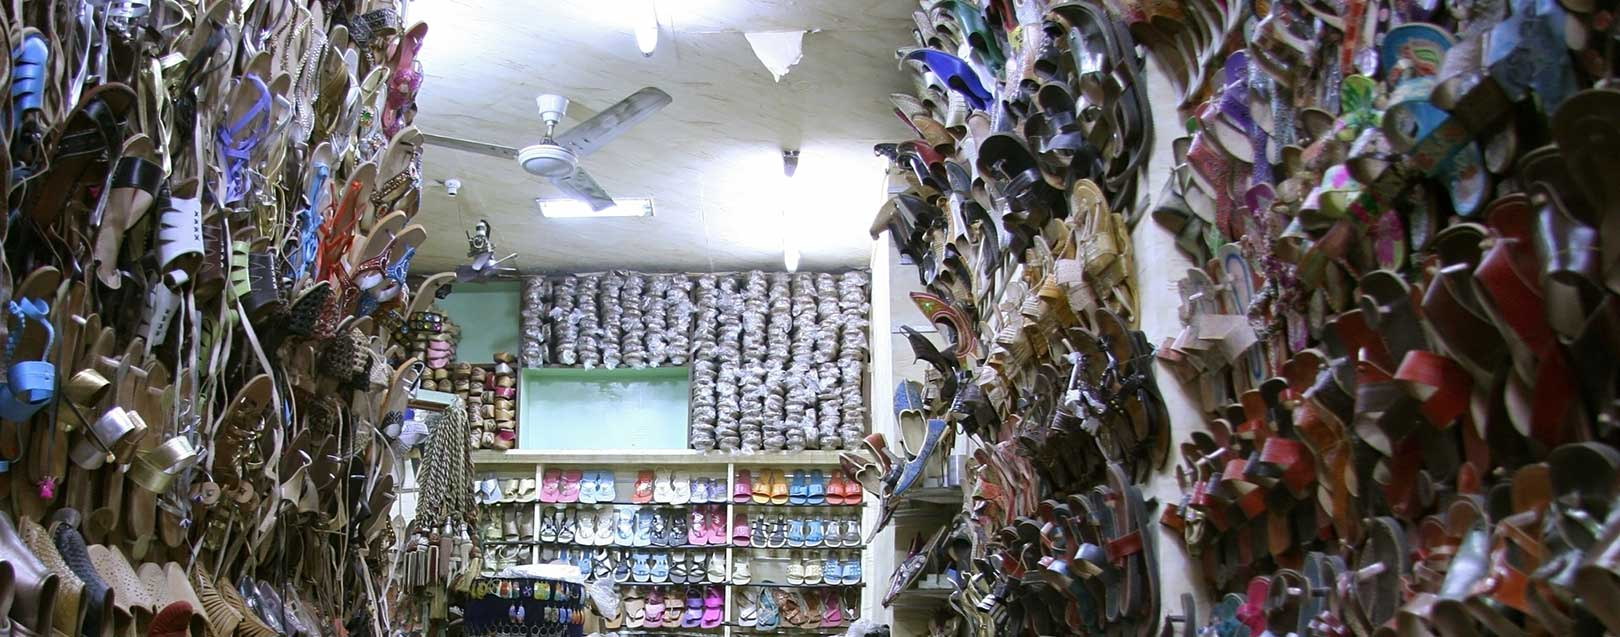 3rd edition of India International Footwear Fair to be held at Delhi